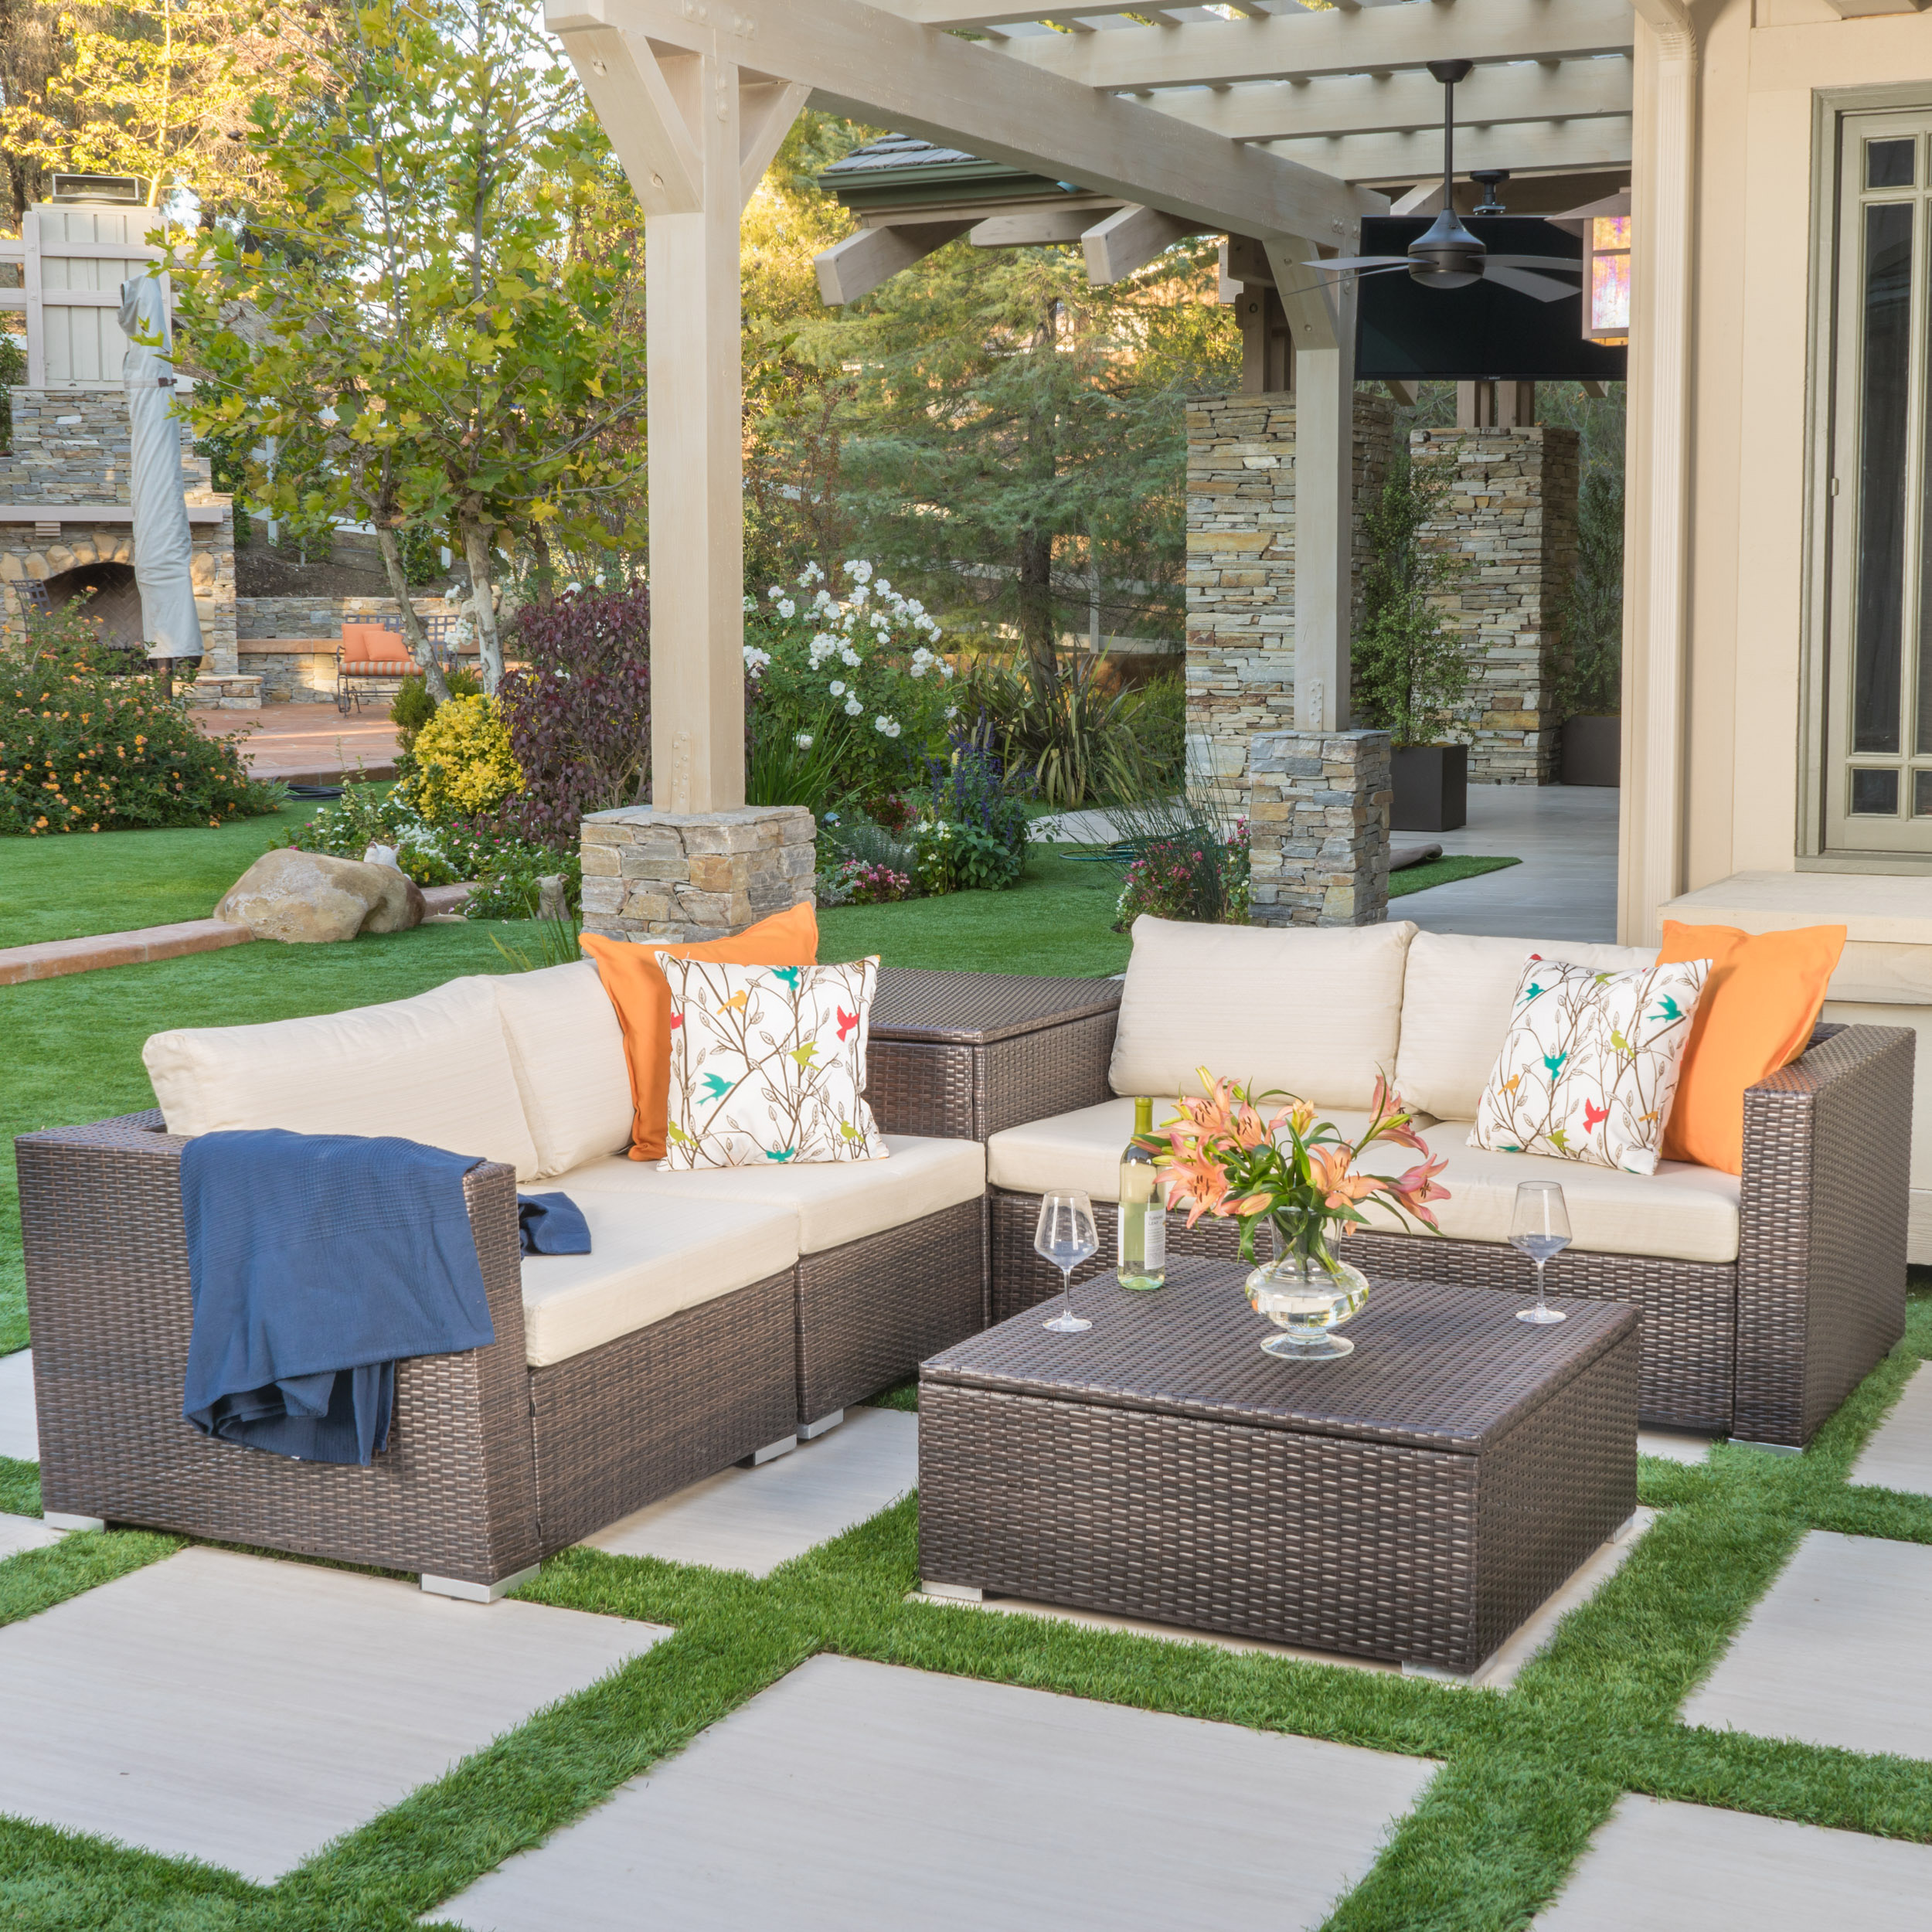 Delicieux Faviola Outdoor 4 Seater Wicker Sectional With Aluminum Frame And Cushions  And With Storage Unit And Coffee Table Storage, Multibrown, Beige